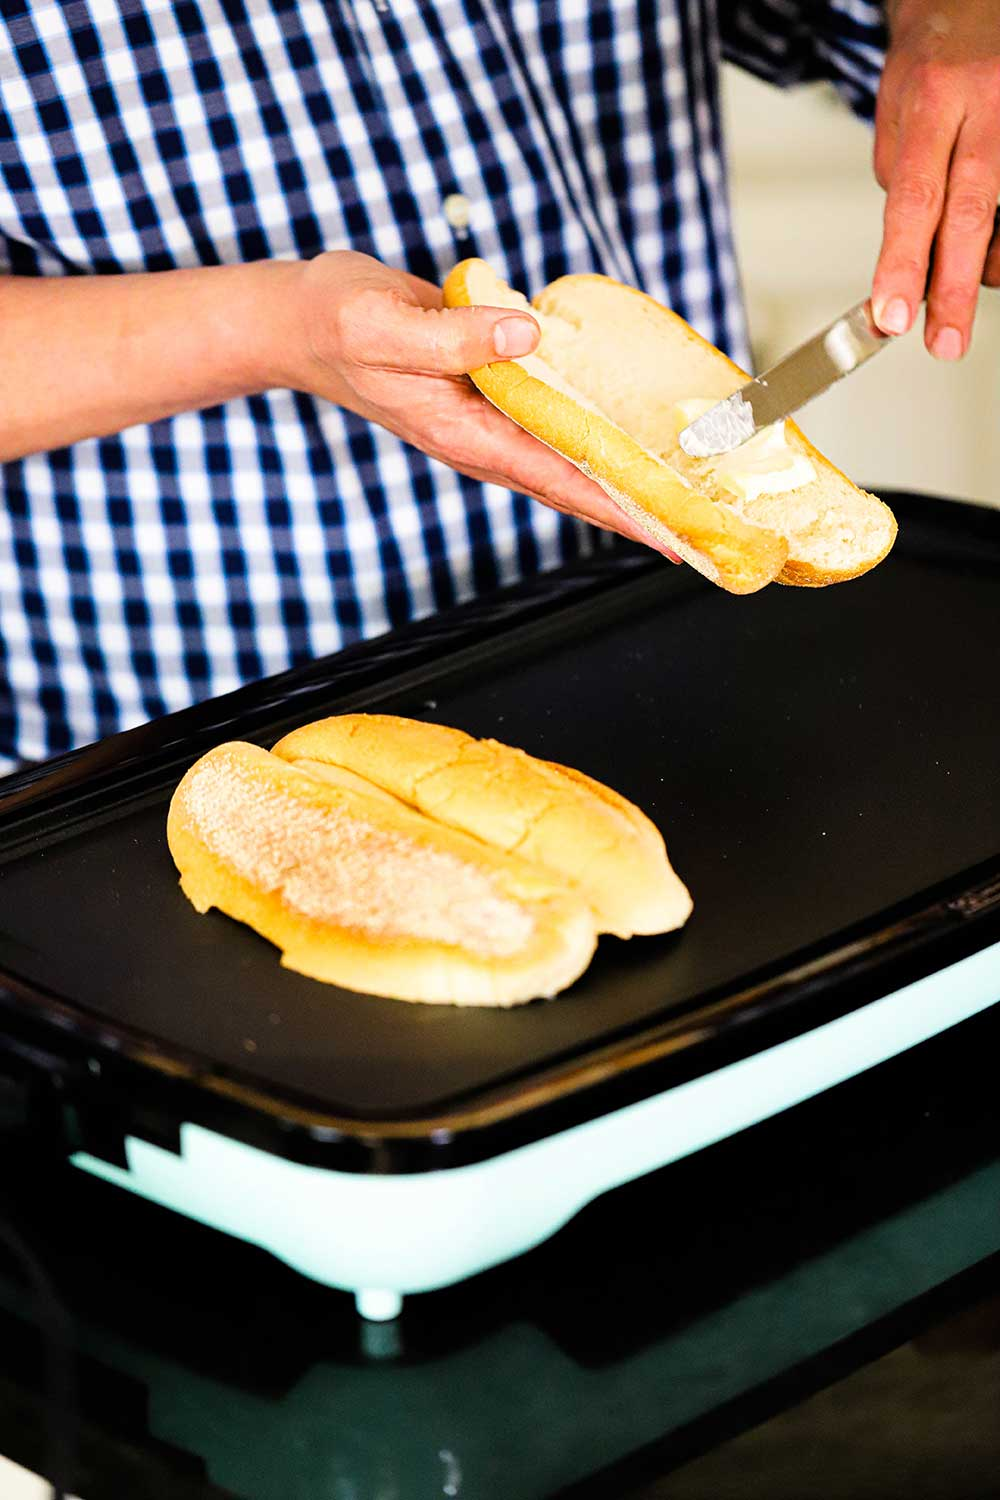 A person smearing softened butter onto the inside of a cut open hoagie over a griddle with another hoagies being toasted, cut-side down.